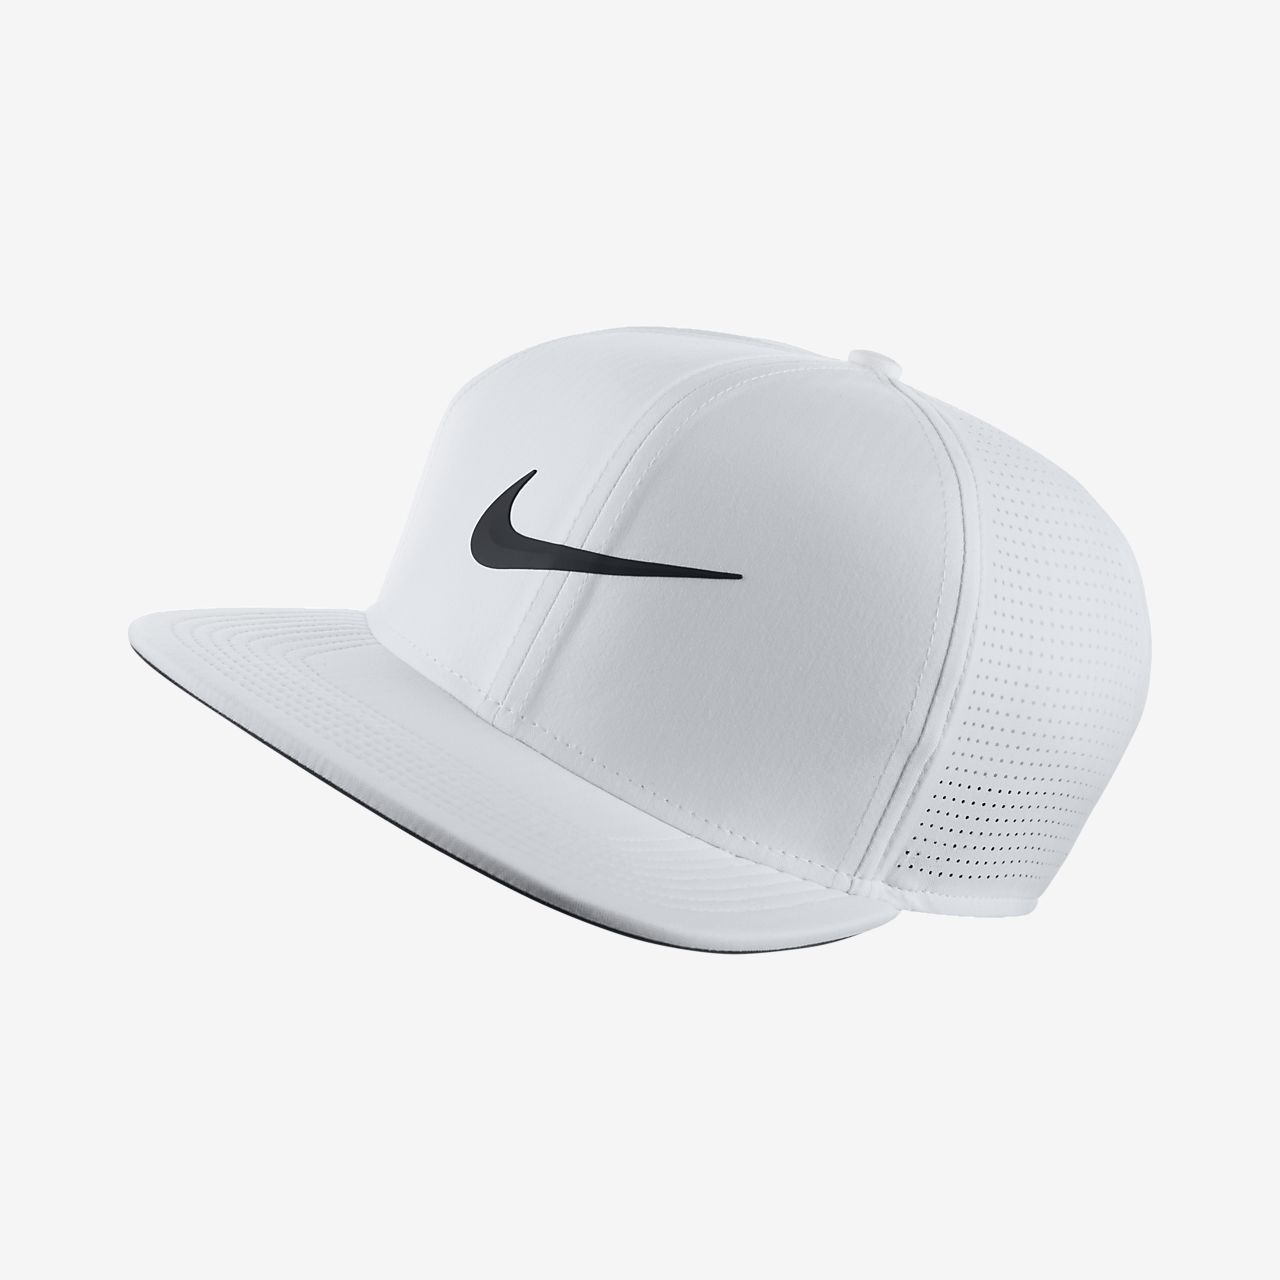 1e27070075fc9 Nike AeroBill Adjustable Golf Hat. Nike.com